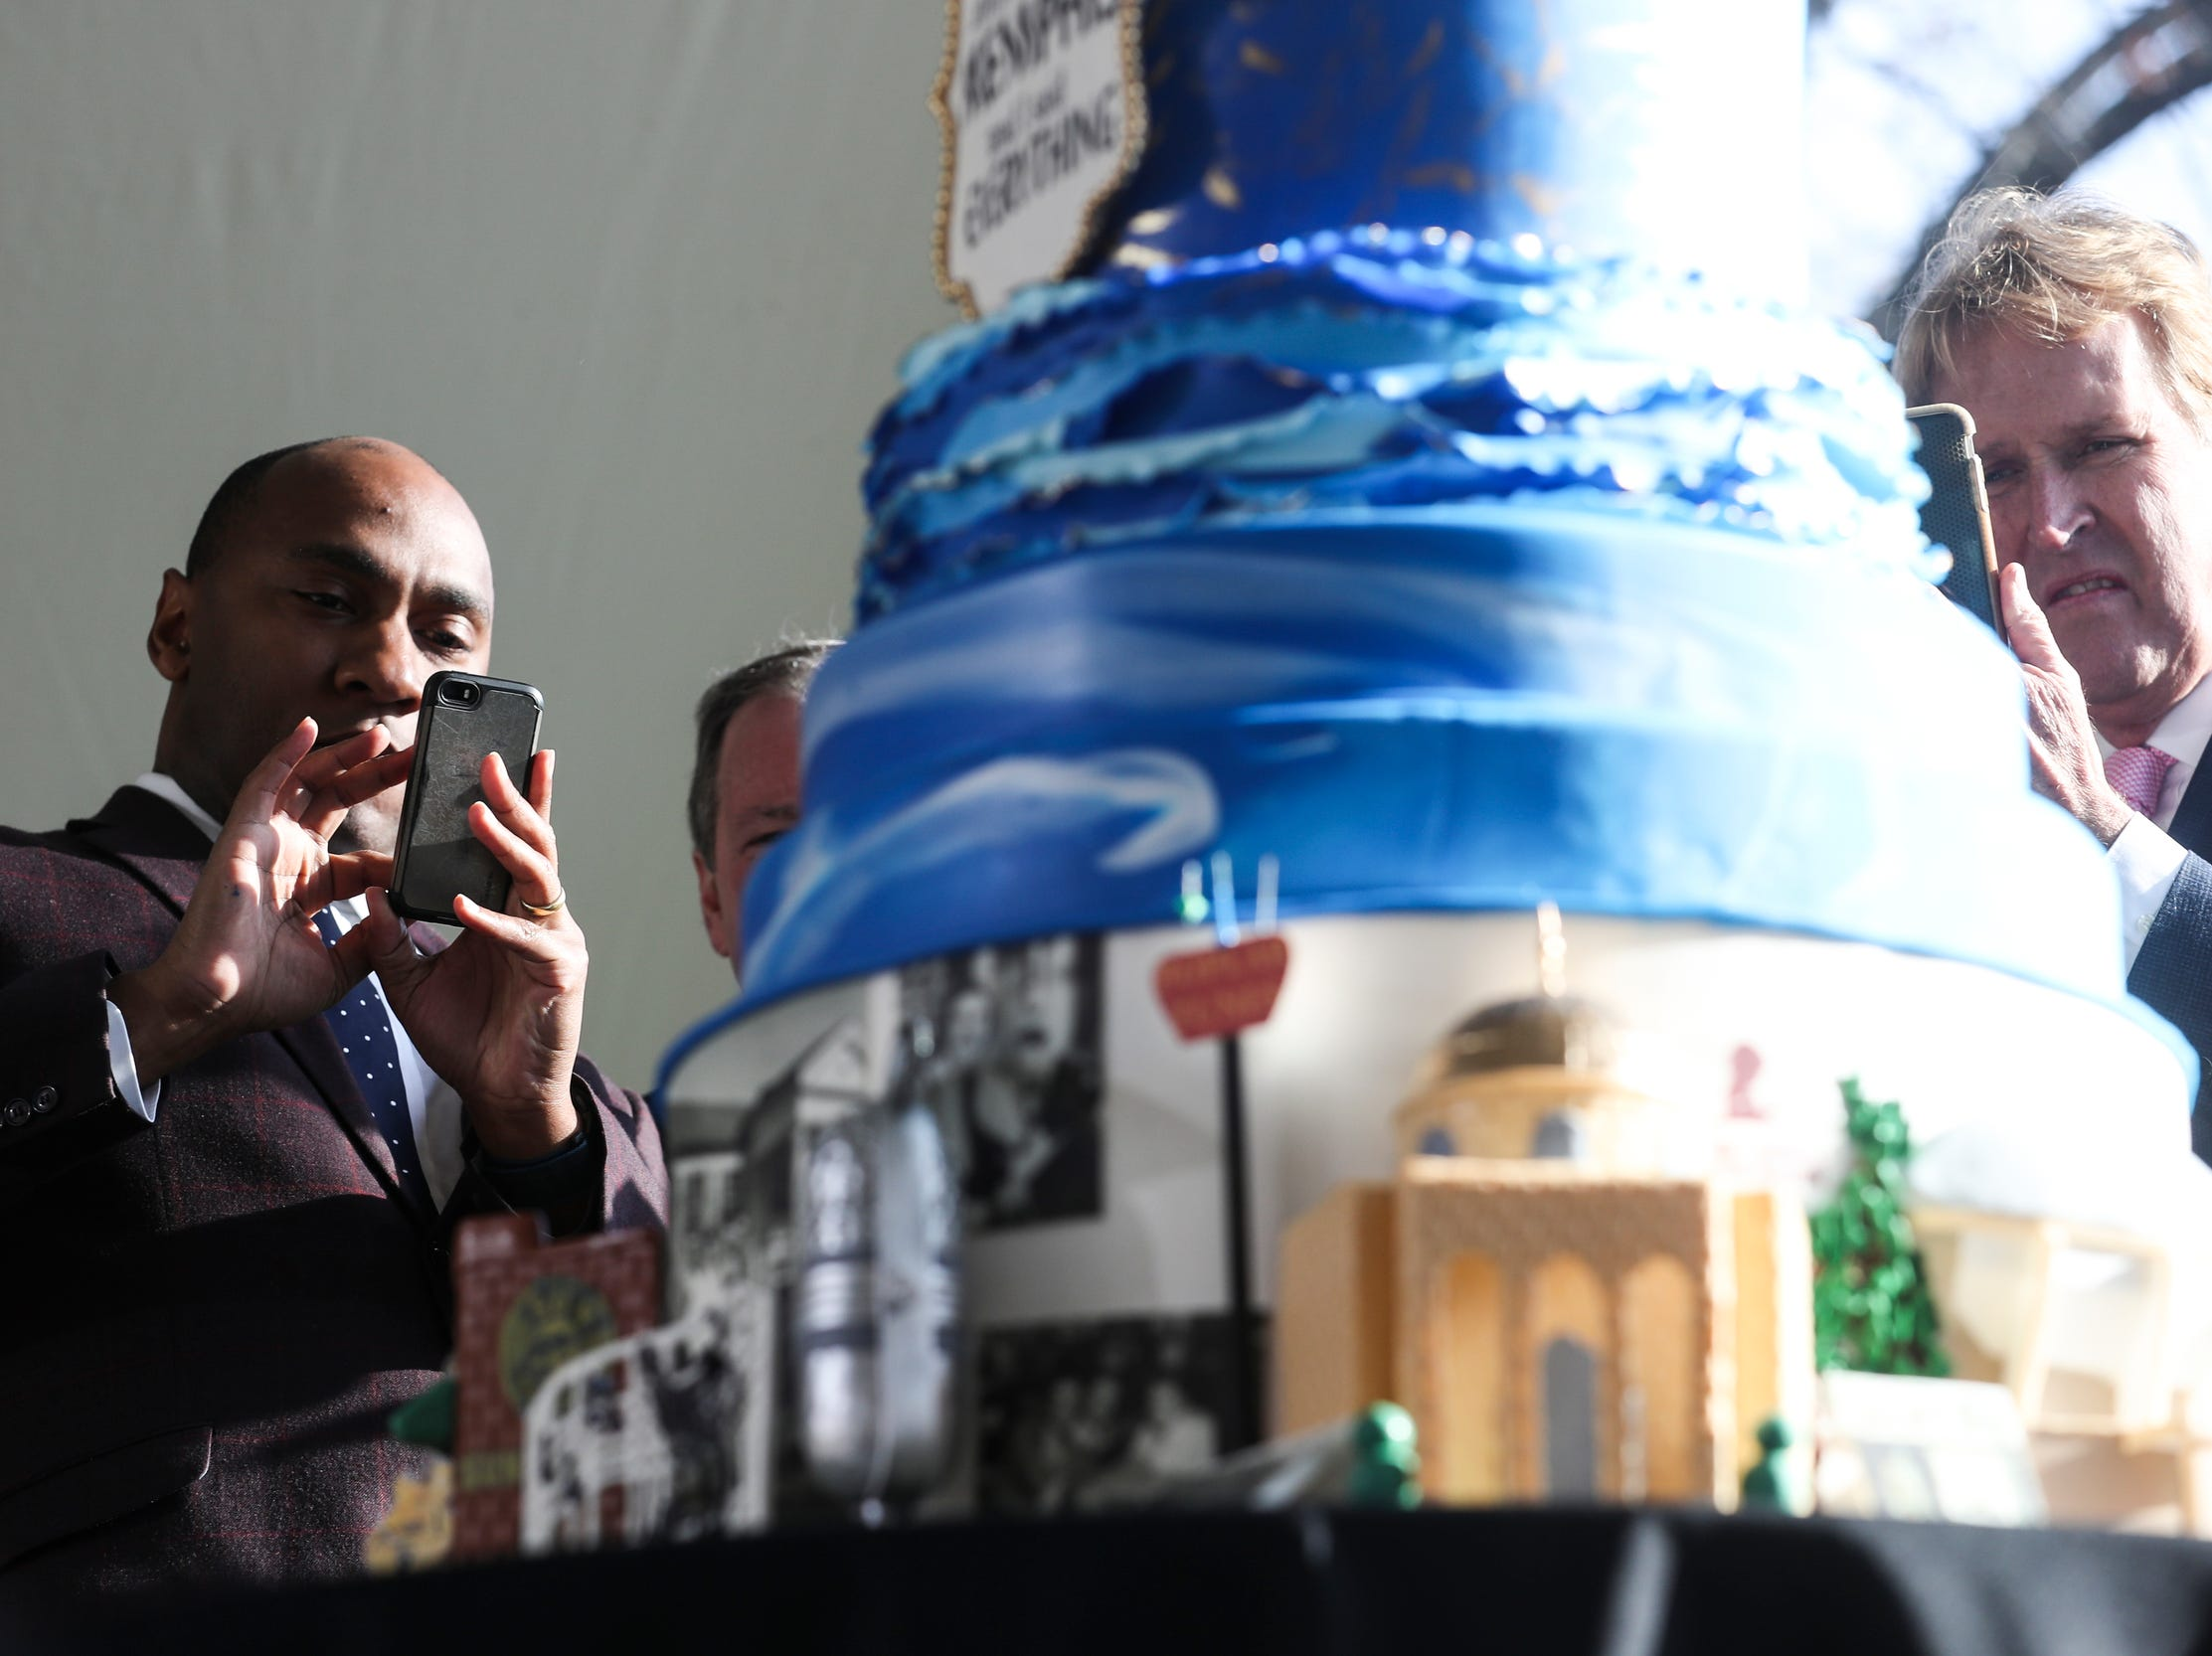 January 08 2019 - Shelby County Mayor Lee Harris, left, and Kevin Kane, president and CEO of the Memphis Convention & Visitors Bureau, take pictures of Elvis' birthday cake as fans and officials gathered on Graceland's north lawn on Tuesday to celebrate during the Elvis Birthday Proclamation Ceremony. Tuesday would have been Elvis' 84th birthday.